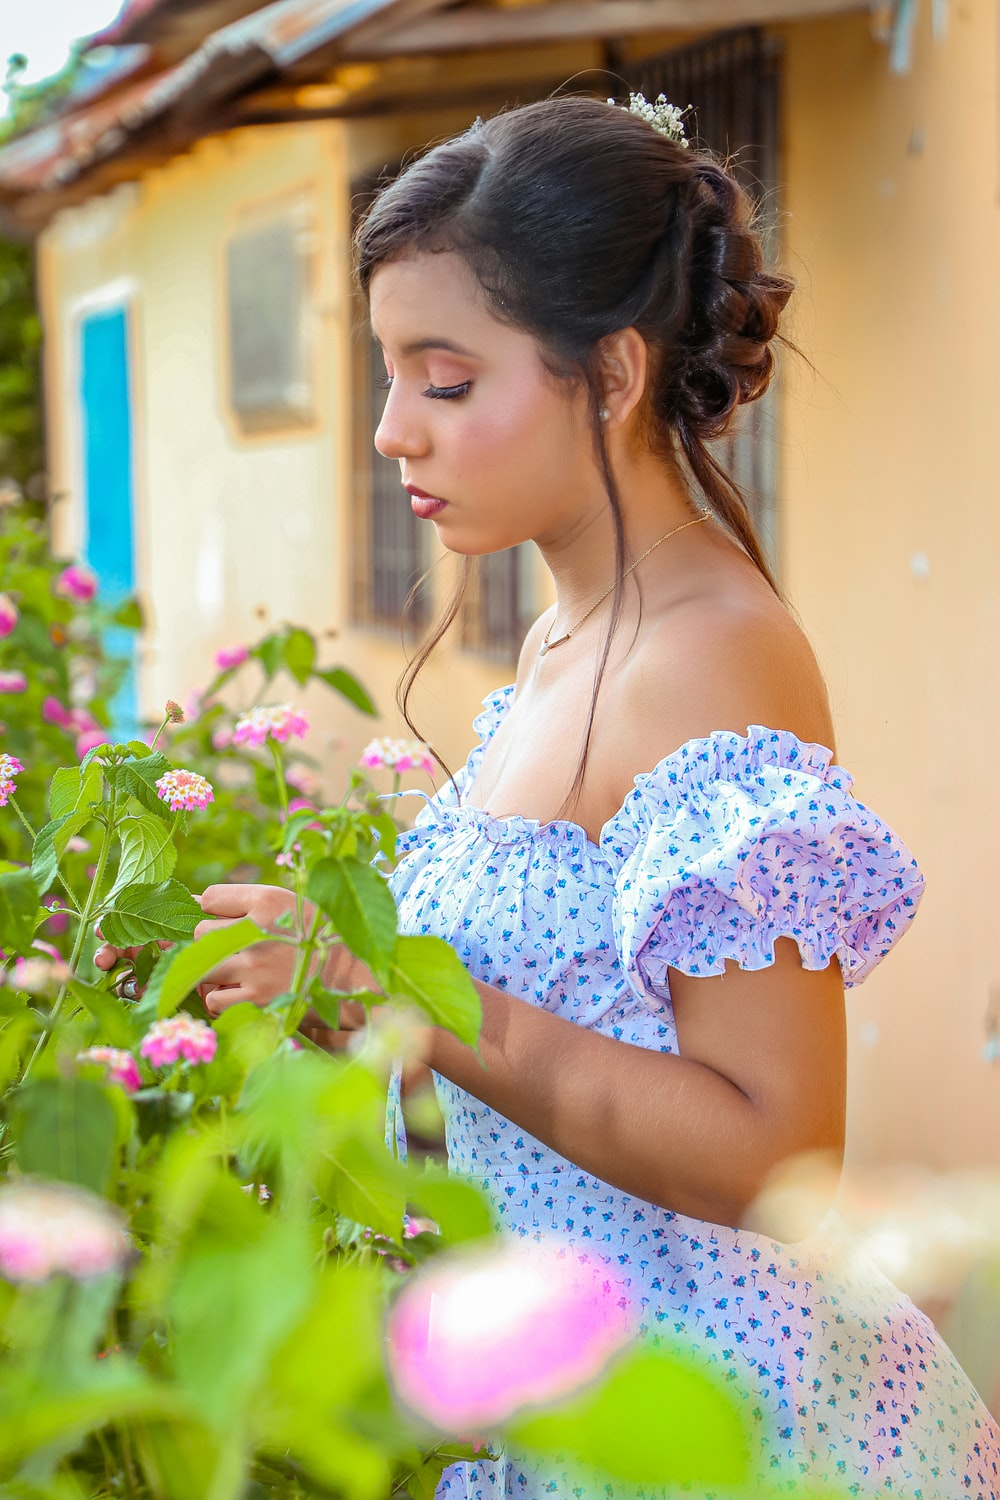 woman in white and blue floral dress standing near pink flowers during daytime